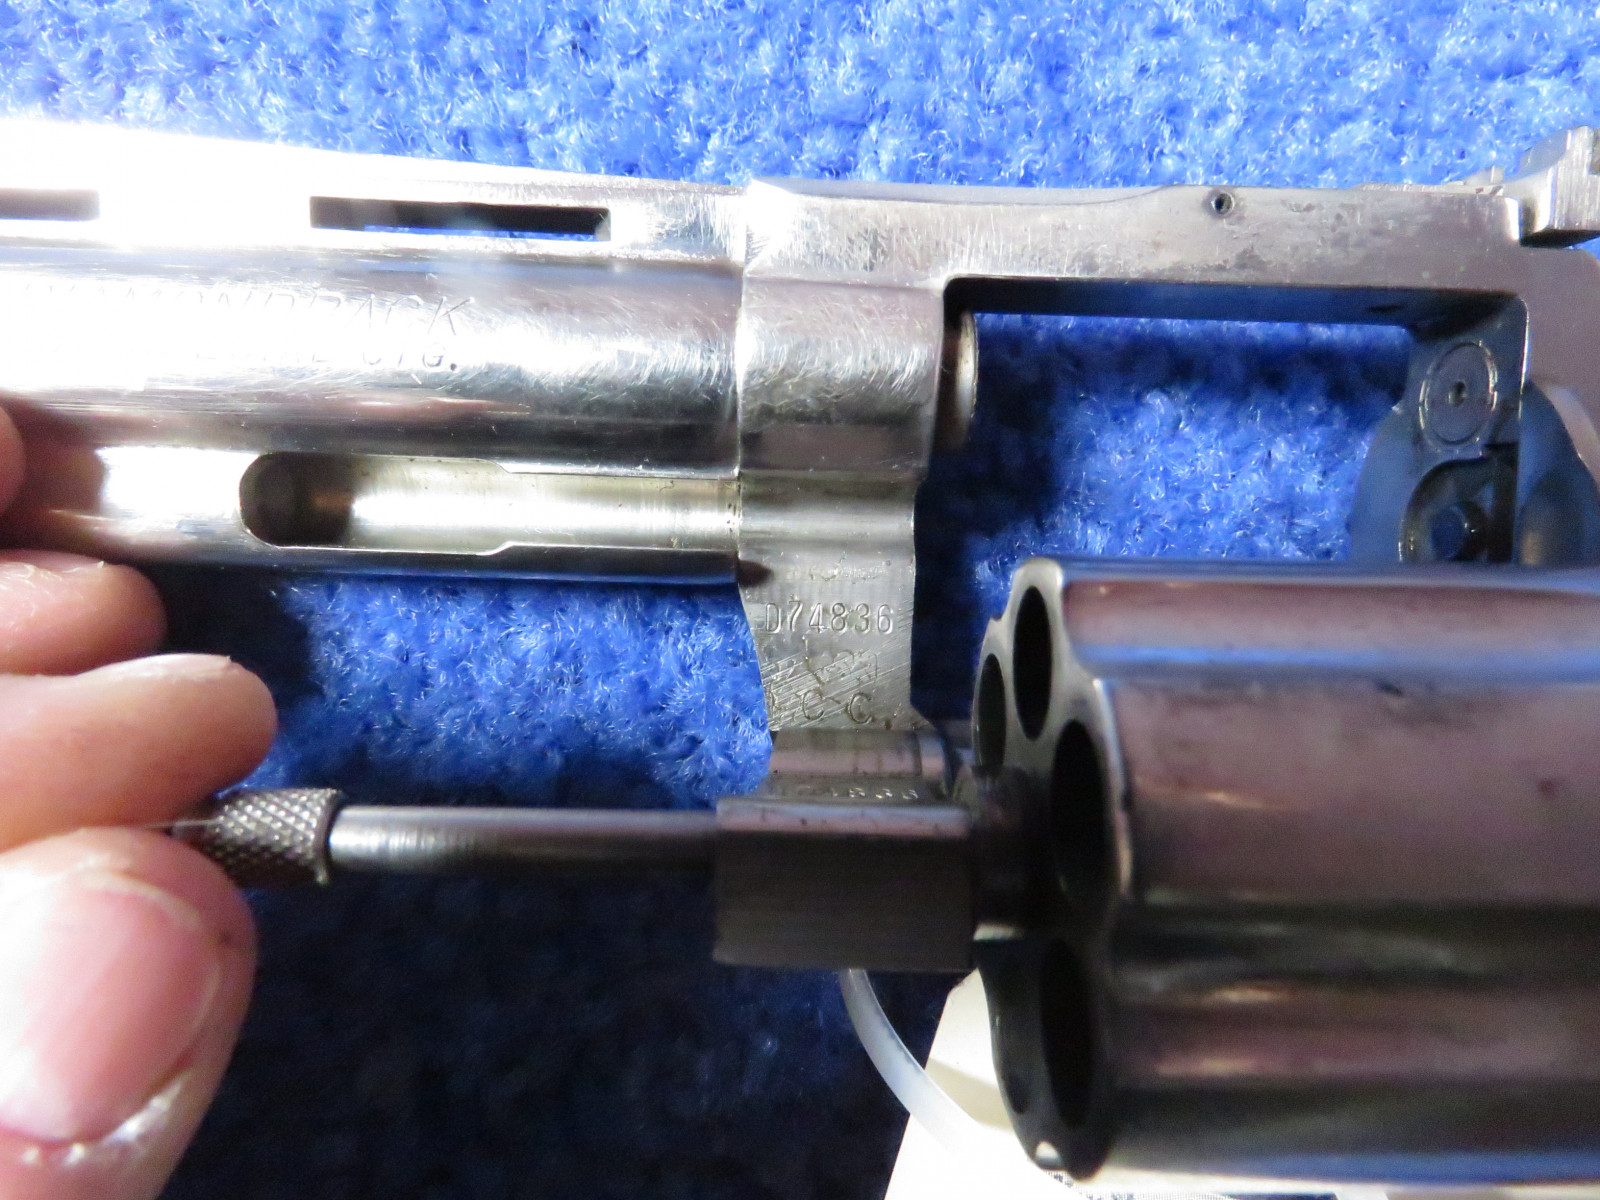 Colt Diamond Back .38 Special CTG Handgun - Image 4